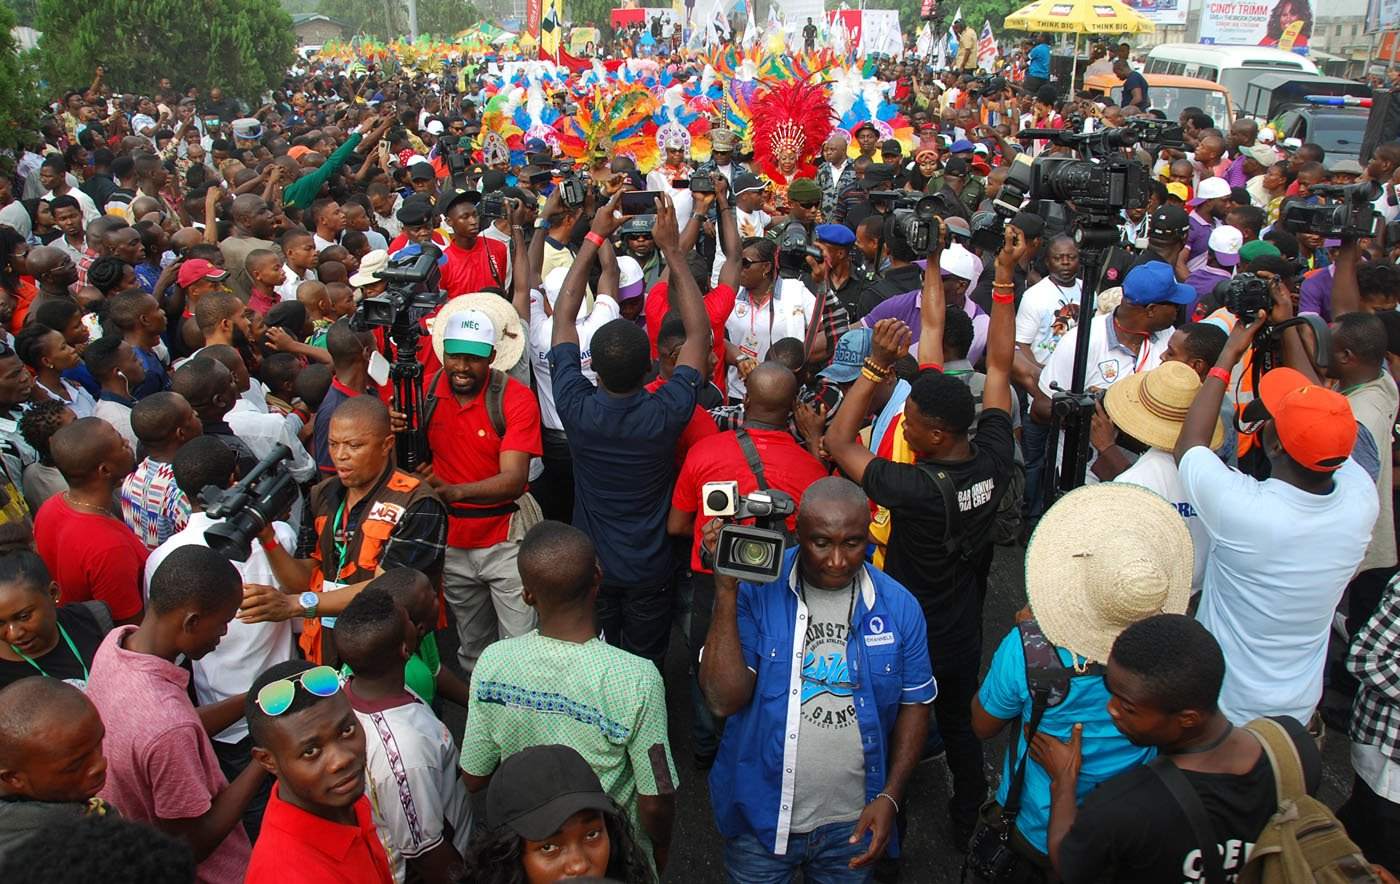 A Mamoth Crowd of Participants and Spectors during the Main Event of the 2017 Carnival Calabar in Cross River State Yesterday. Photo: Nwankpa Chijioke